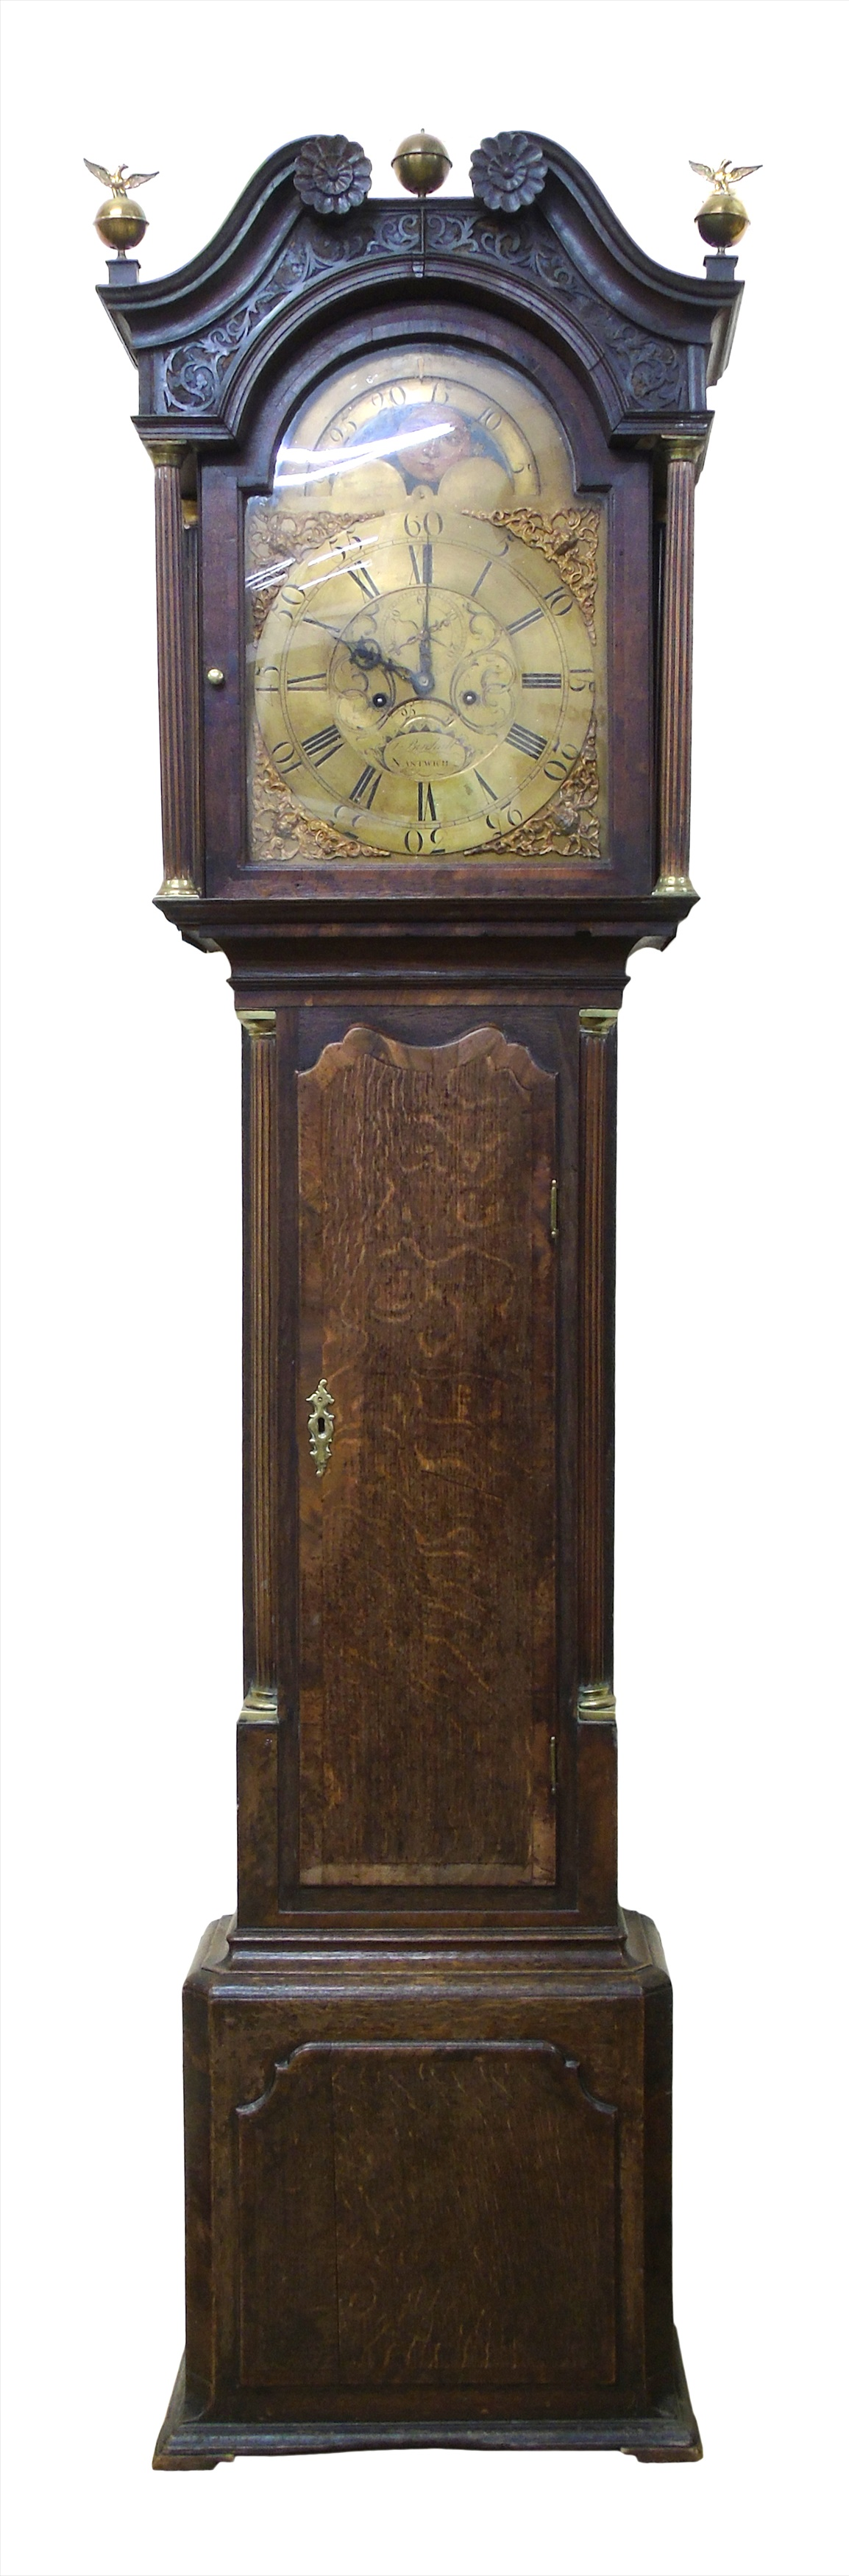 "Longcase clock by Thomas Birchall, Nantwich, 8-day movement, striking on single bell, brass arched dial with rolling moon, secondary minute dial and date aperture, cast metal spandrels, case with canopy, swan neck pediment with blind fretwork, trunk with quartered columns, long walnut cross-banded door, box base with single panel, height 210cm (83"")."